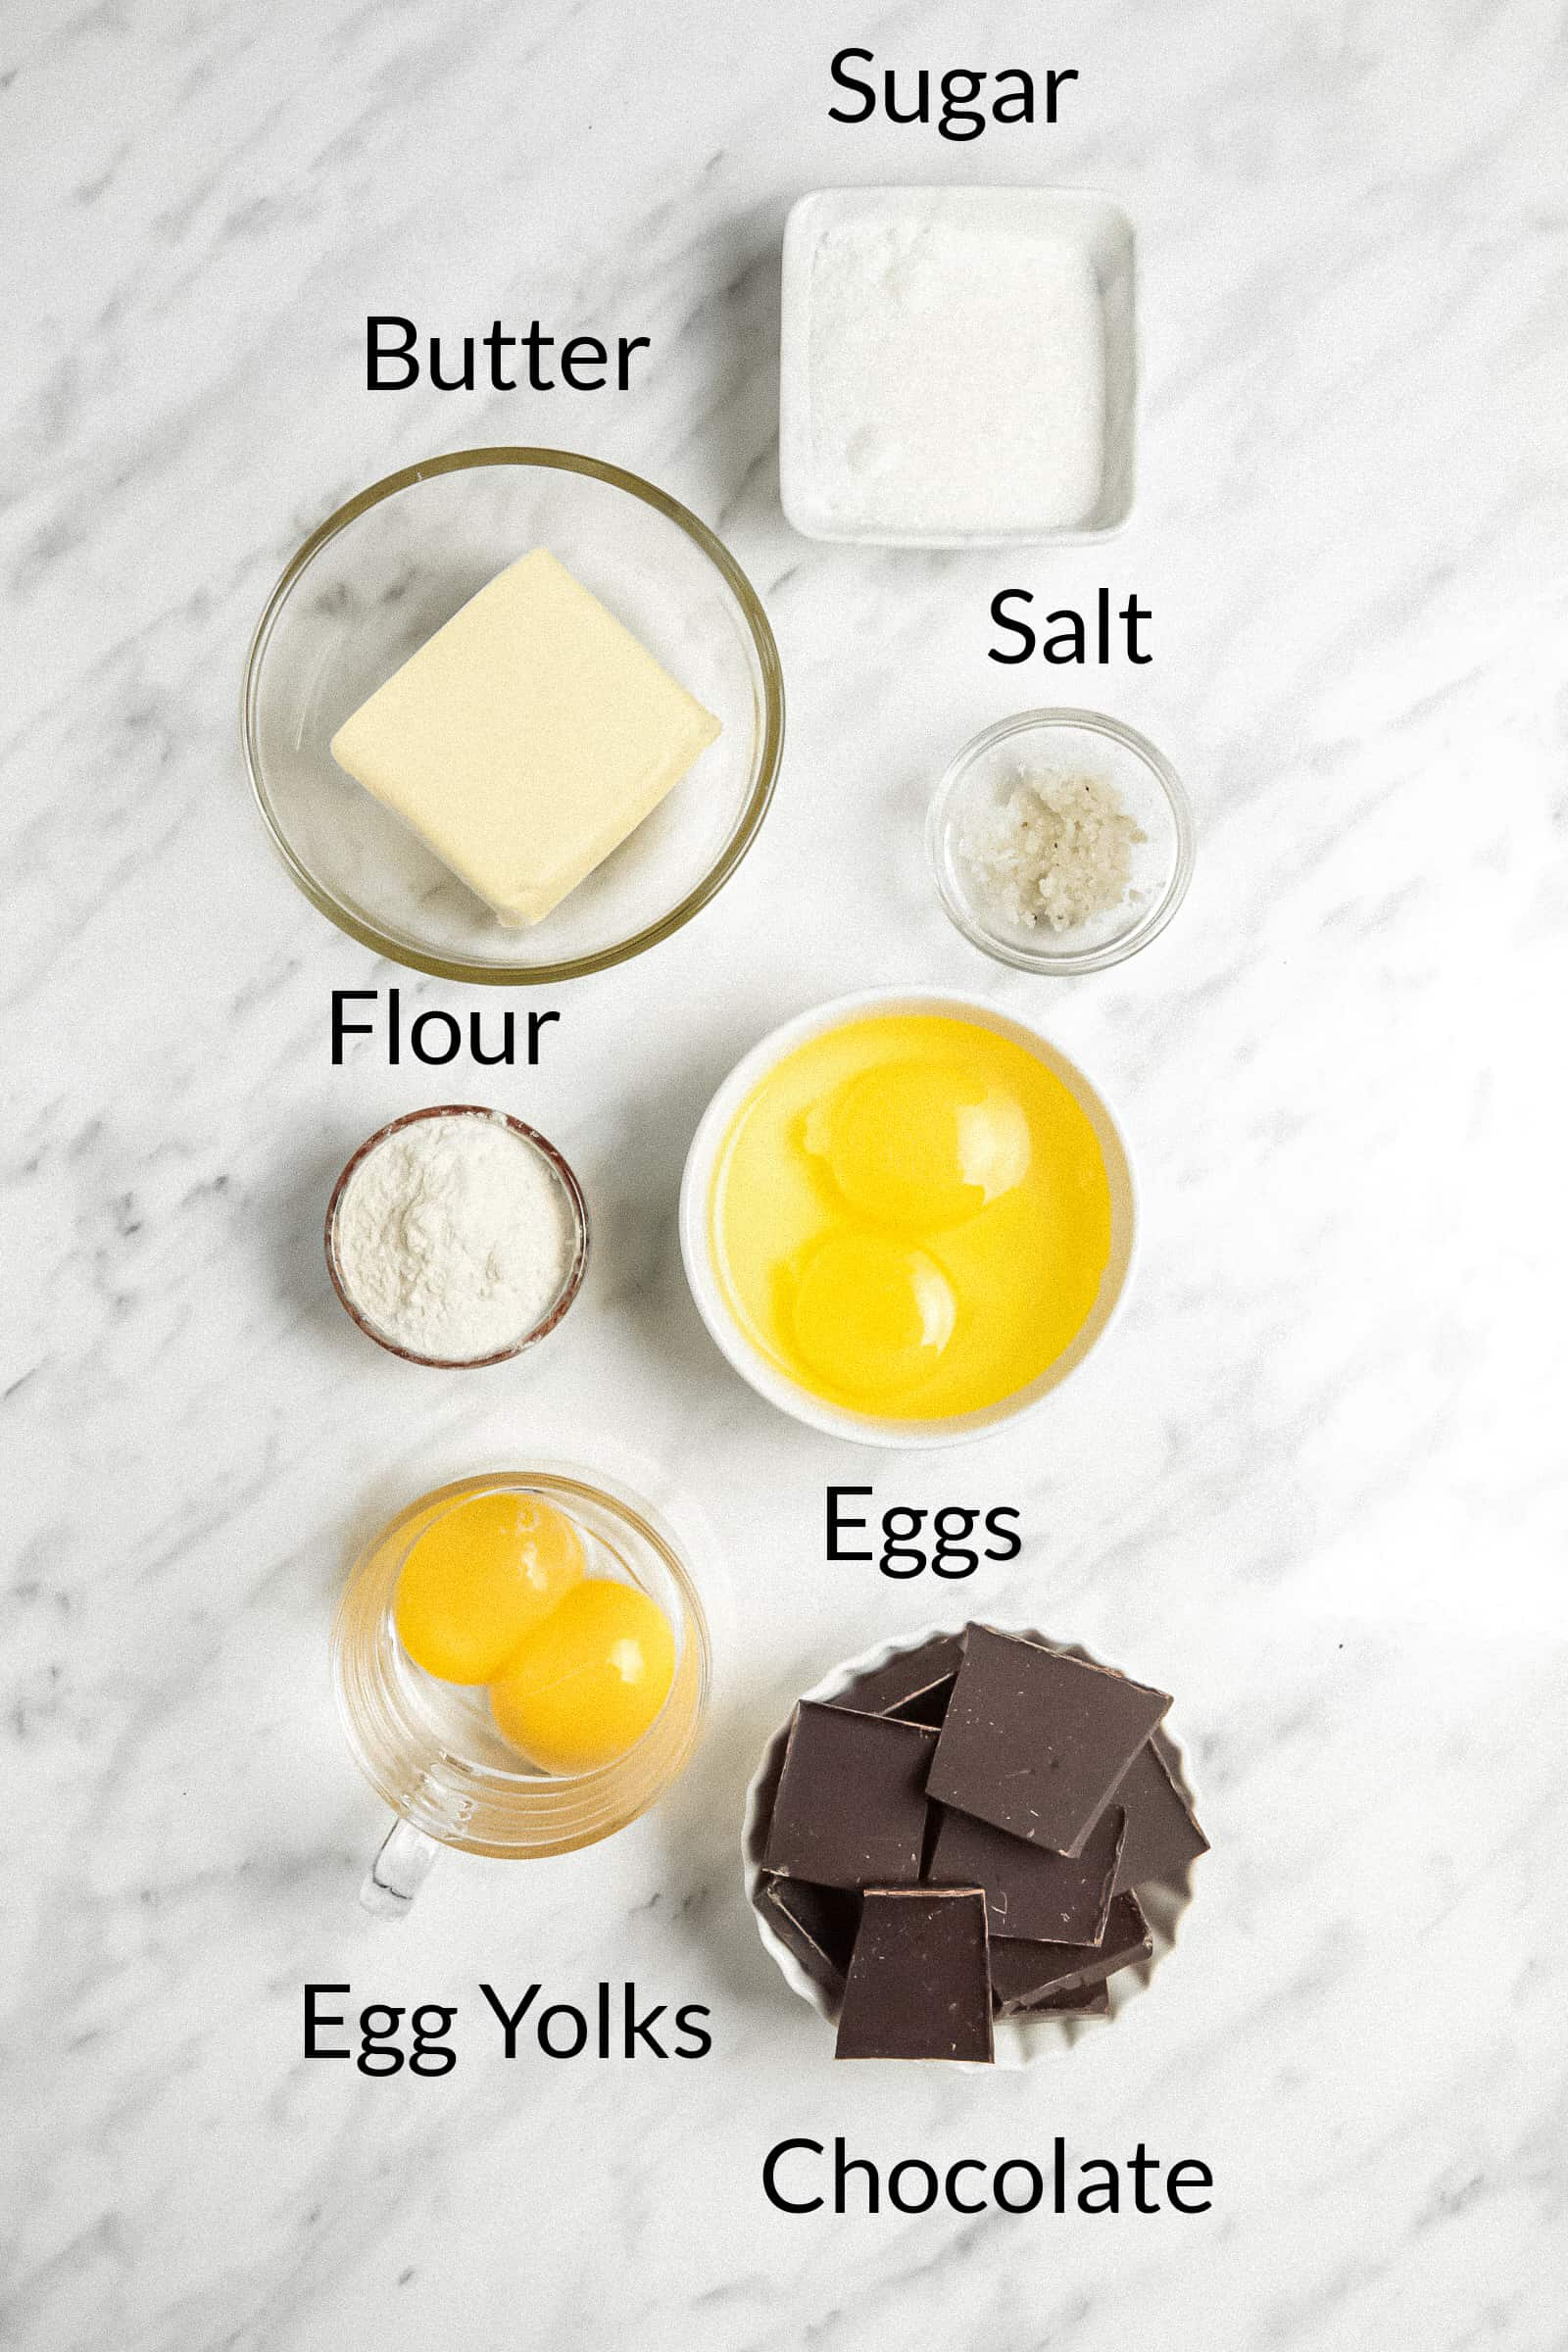 ingredients for molten cake prepped in small bowls